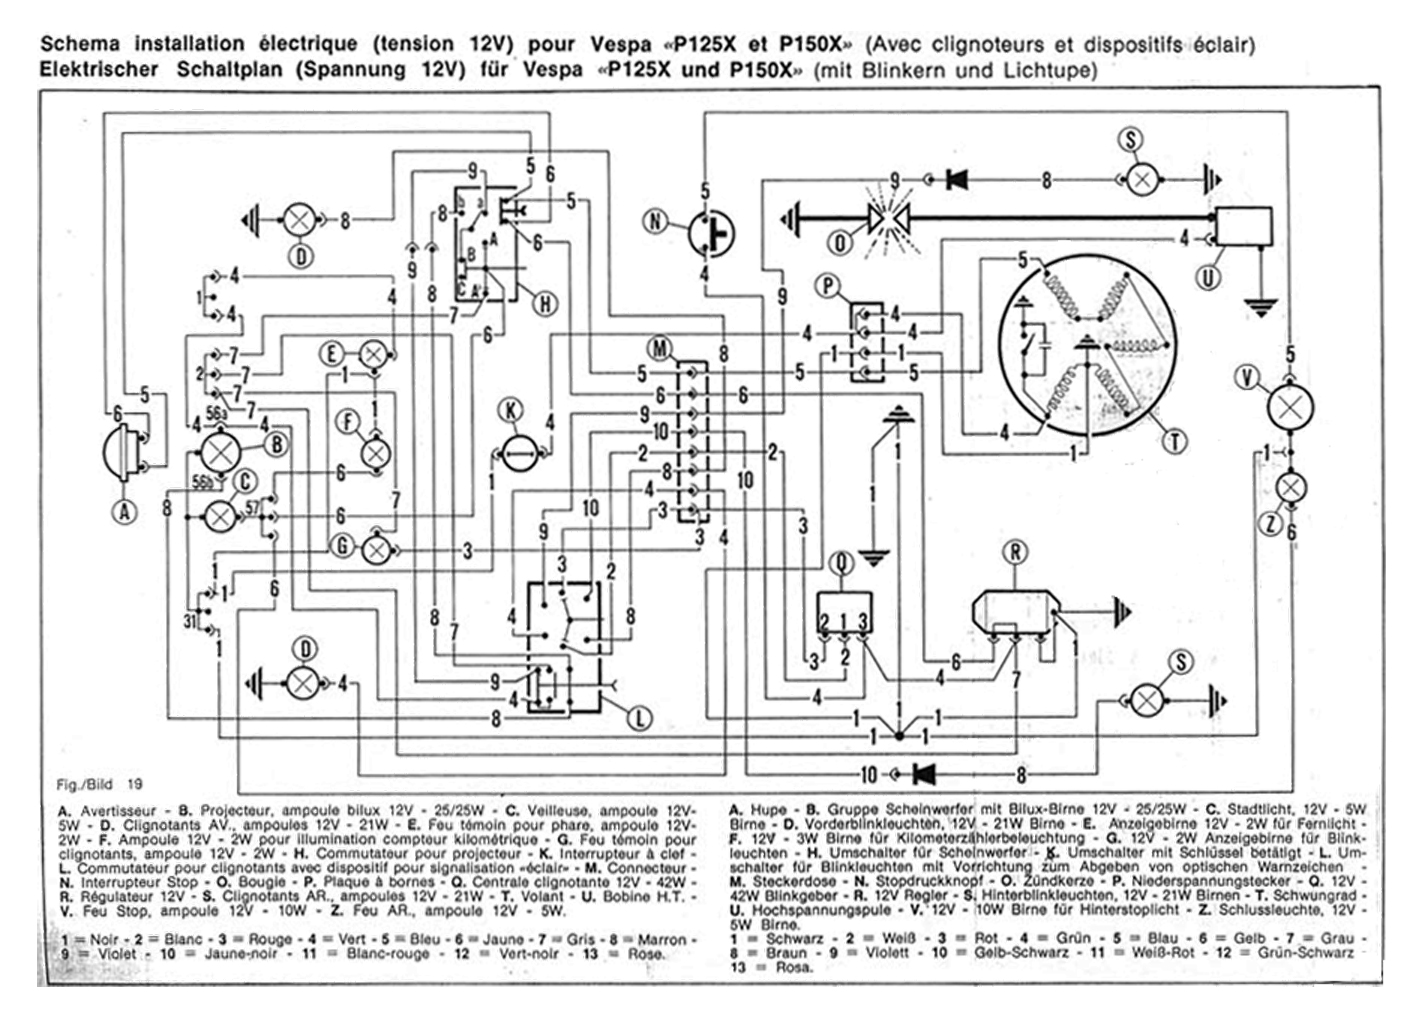 px125 150_12v_mit_blinker_u_lichthupe wiring diagrams wiring diagrams vespa px 150 wiring diagram at bakdesigns.co